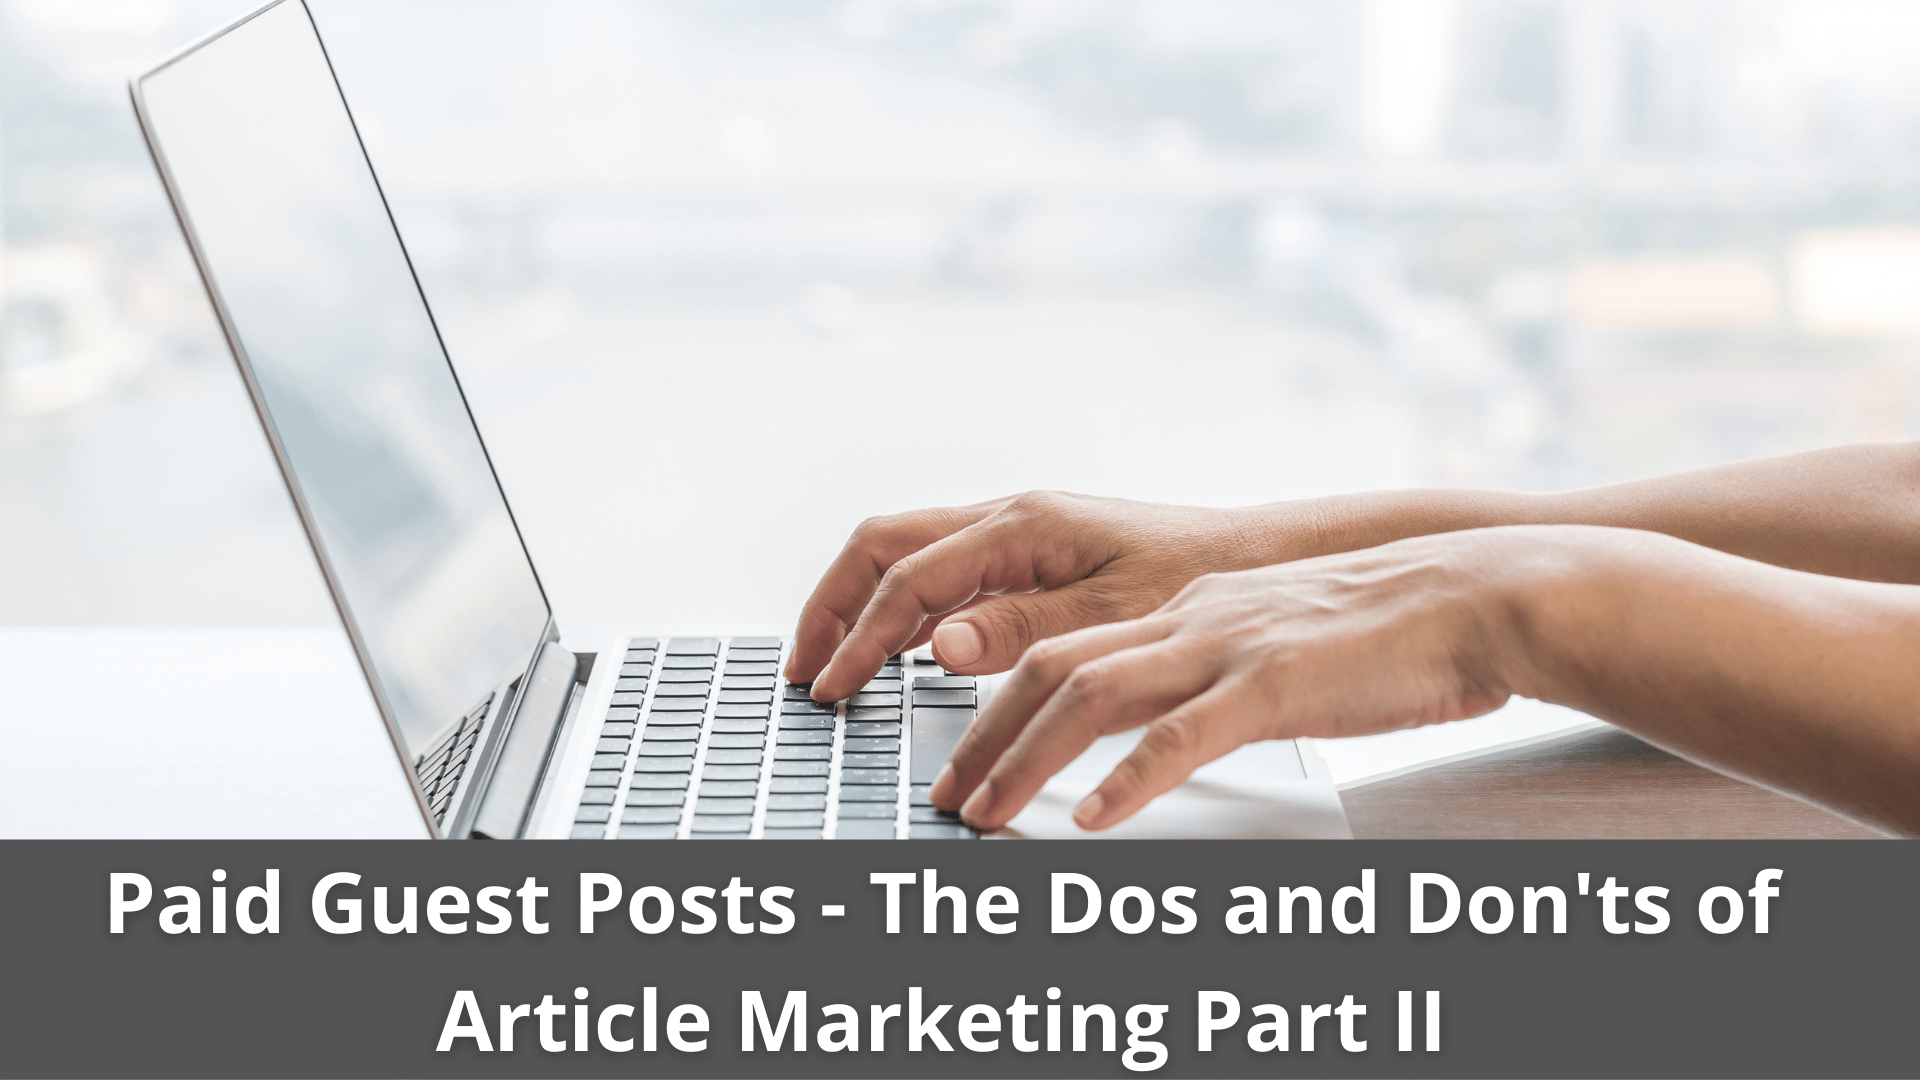 Paid Guest Posts - The Dos and Don'ts of Article Marketing Part II 41